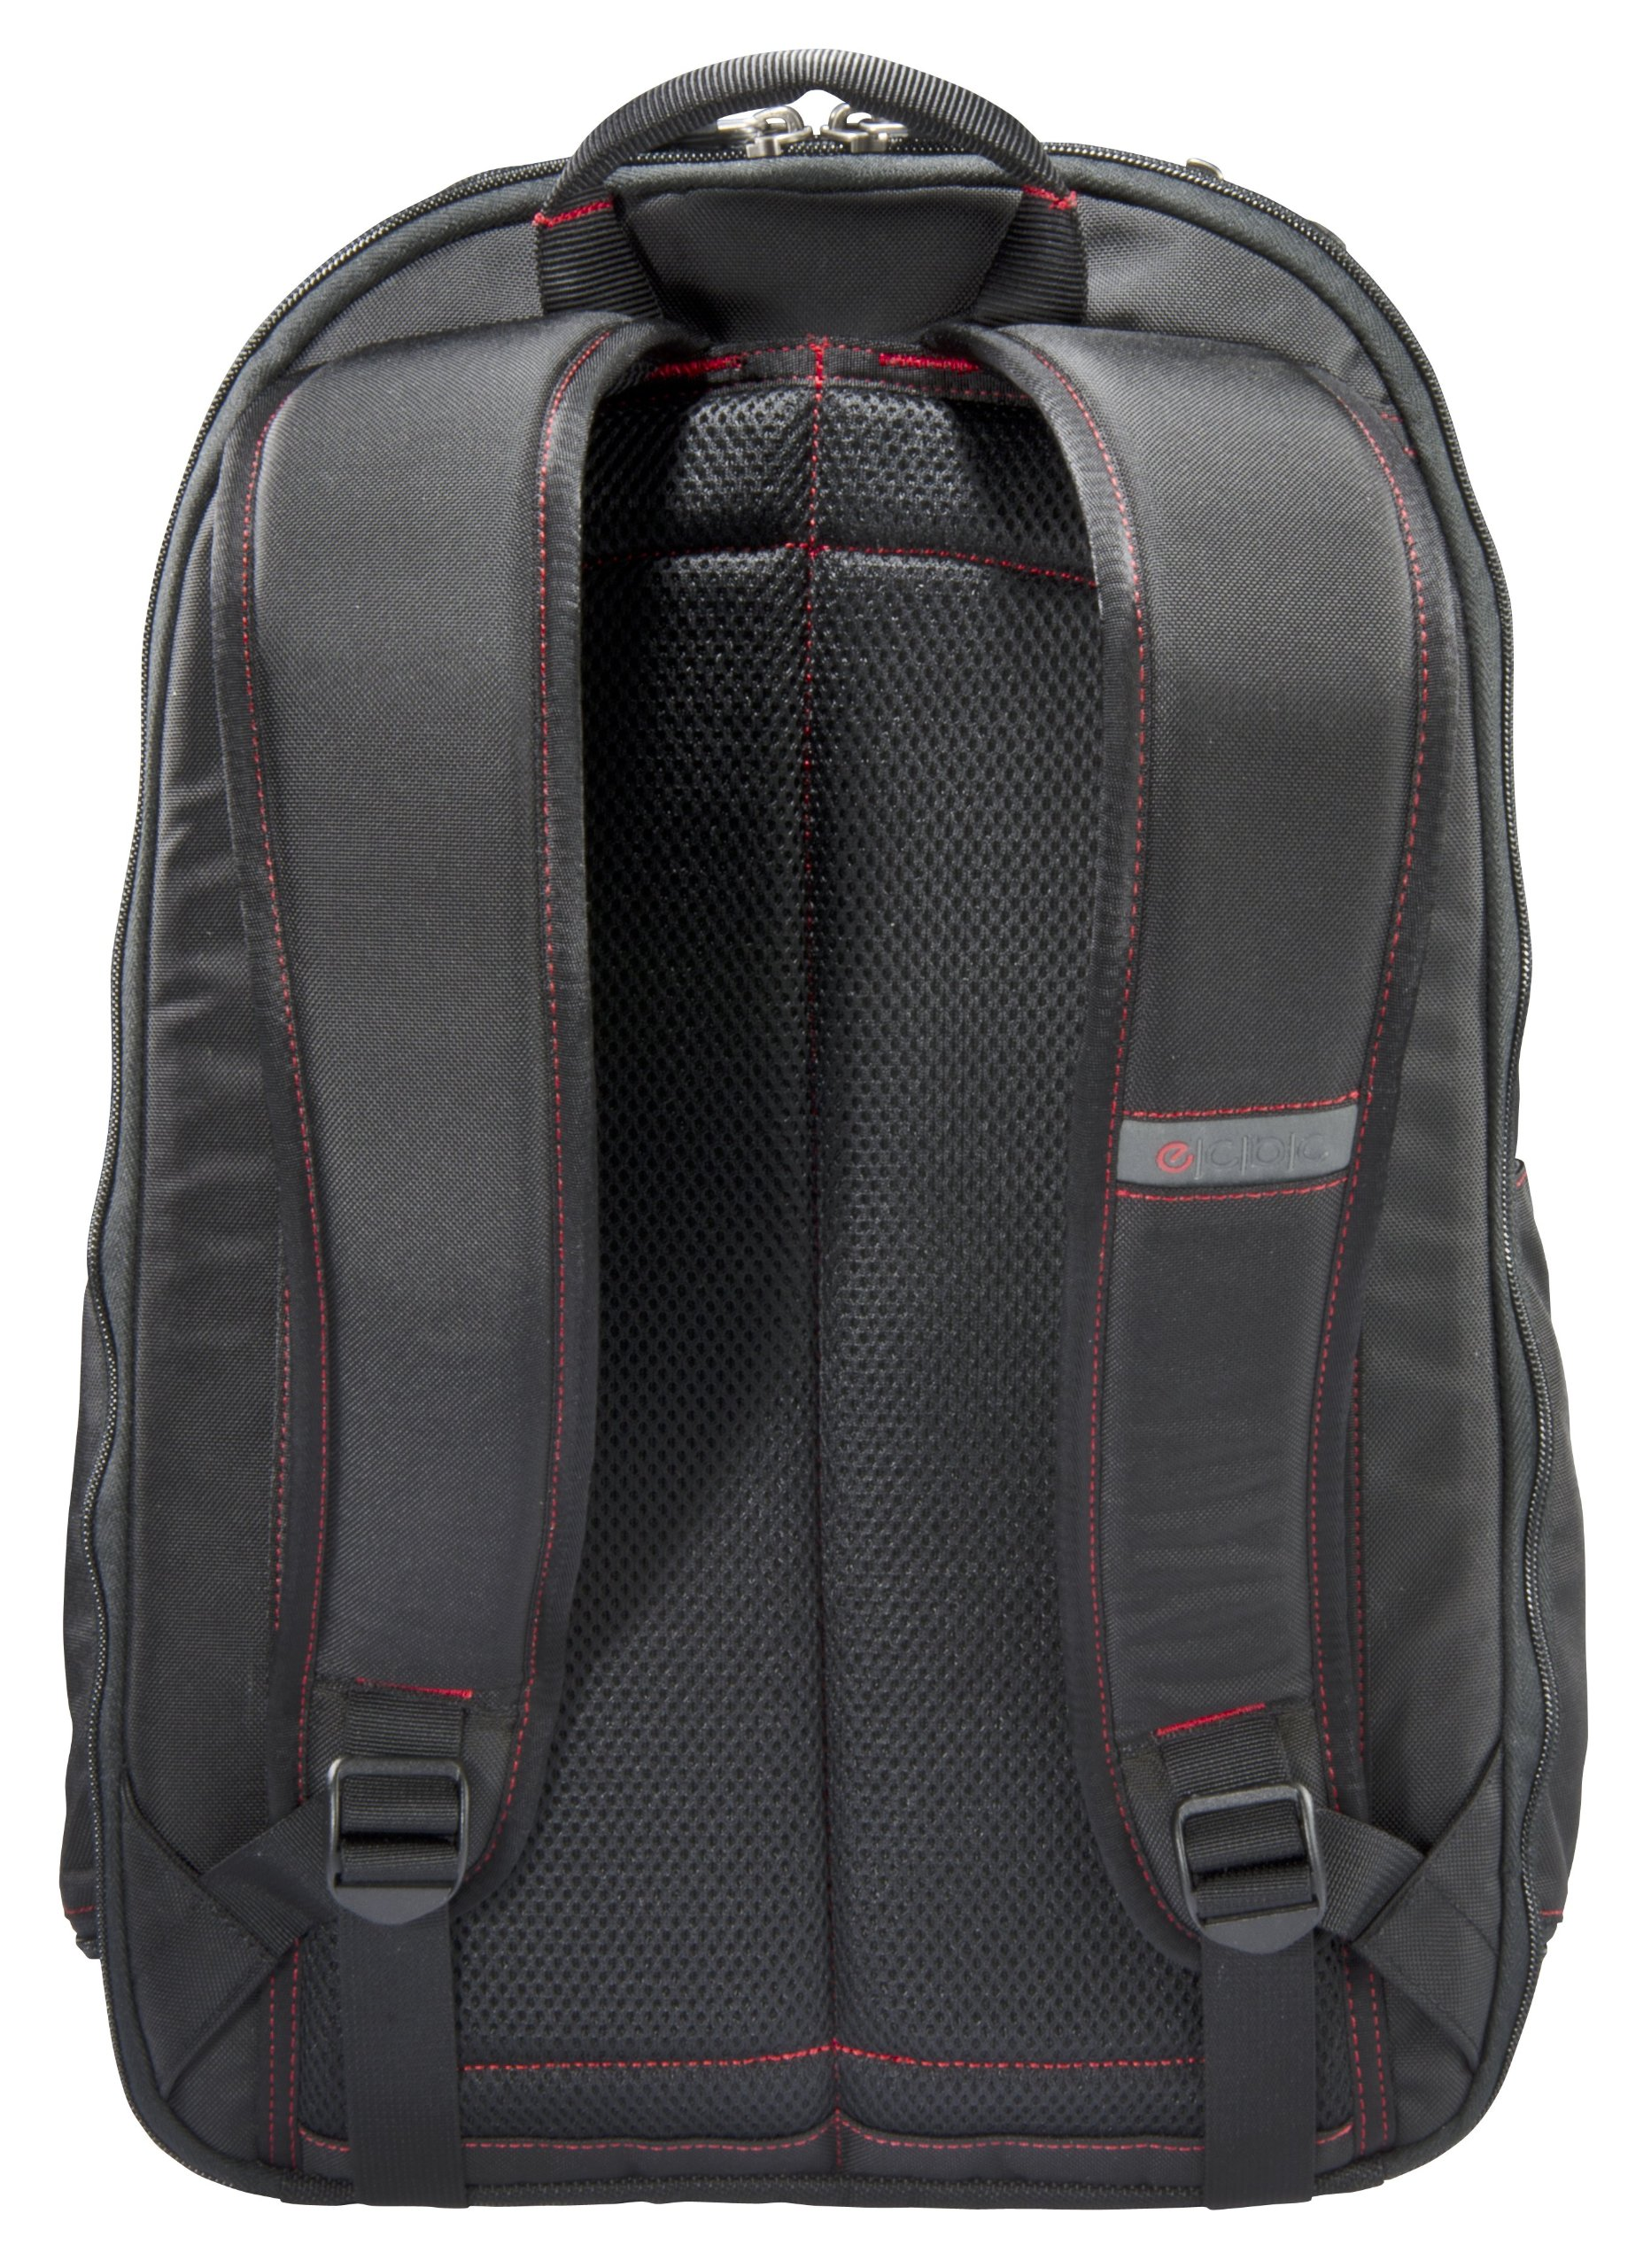 ECBC Javelin - Backpack Computer Bag - Black (B7102-10) Daypack for Laptops, MacBooks & Devices Up to 16.5'' - Travel, School or Business Backpack for Men & Women - Premium Quality, TSA FastPass Friendly by ECBC (Image #2)